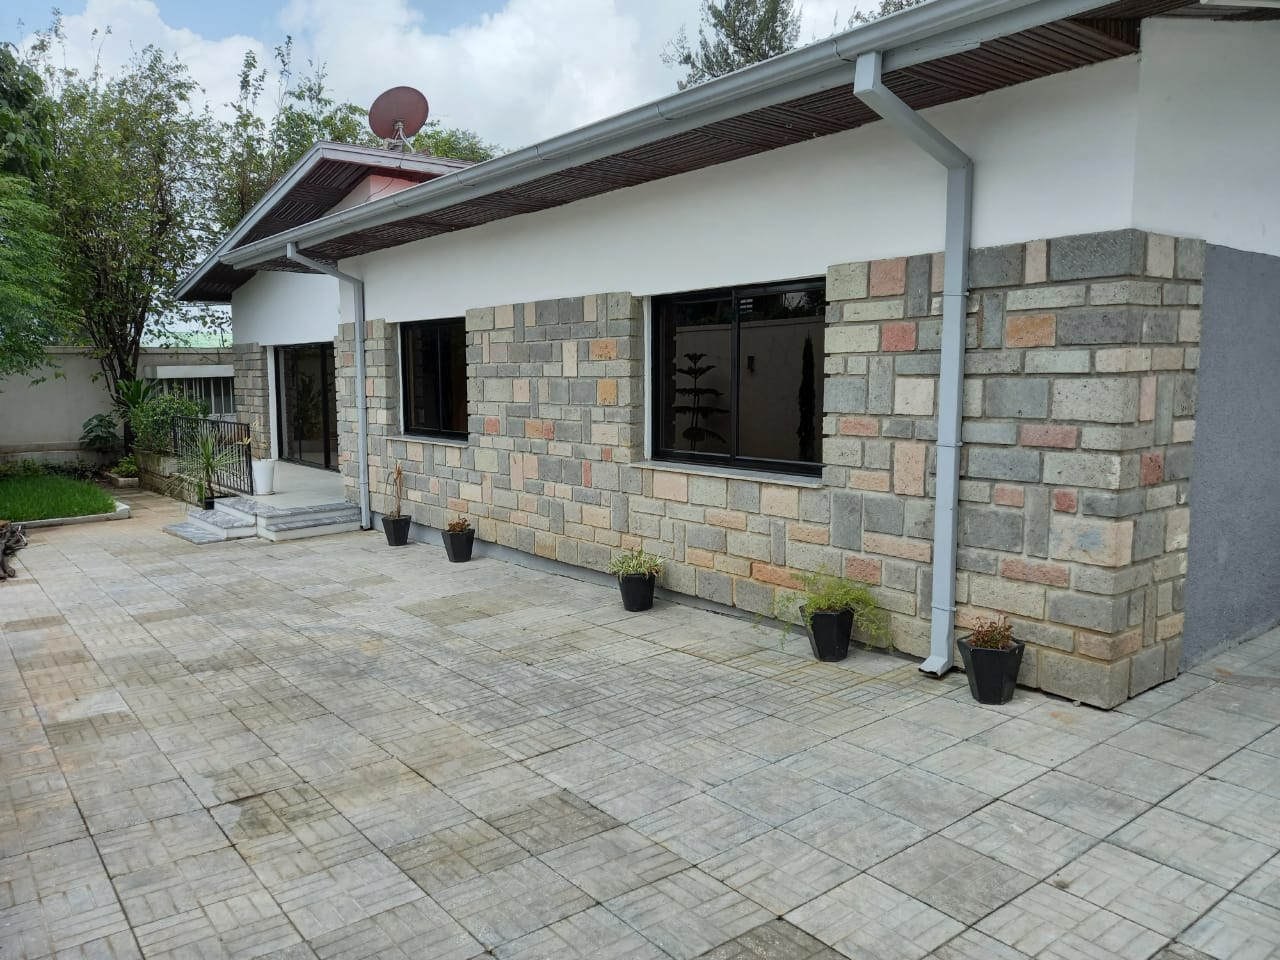 3 Bedroom Villa For Rent In Addis Ababa, At Old Airport